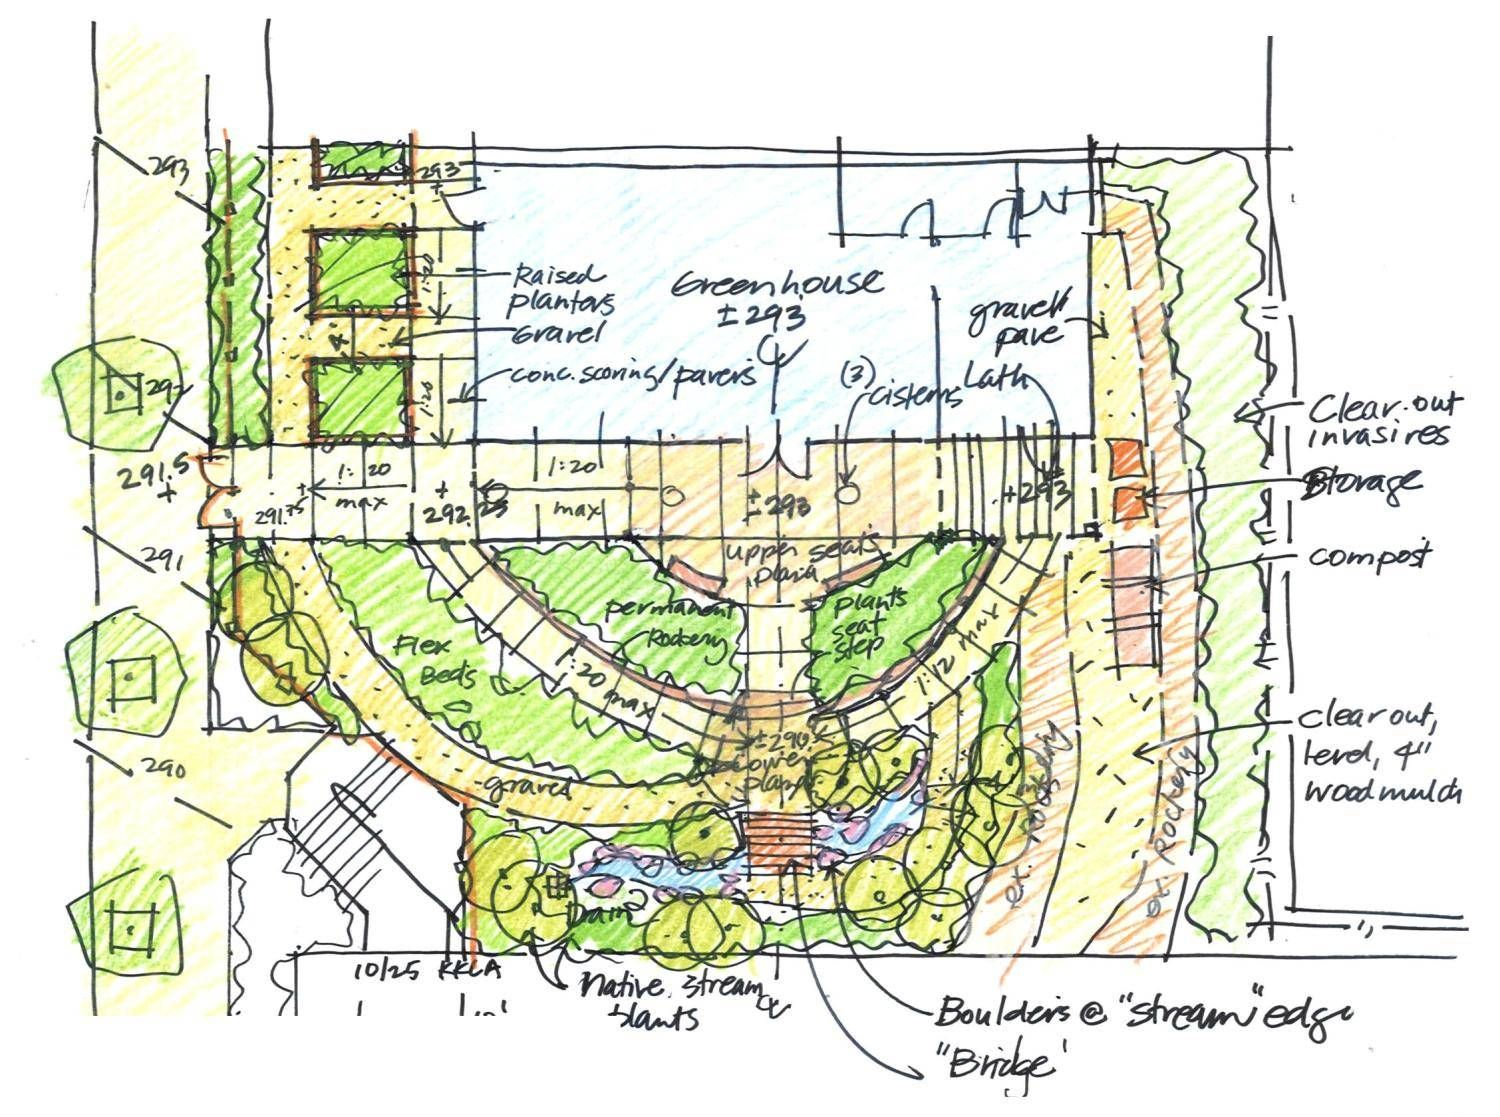 trend landscape plan drawing 5 how to draw architectural